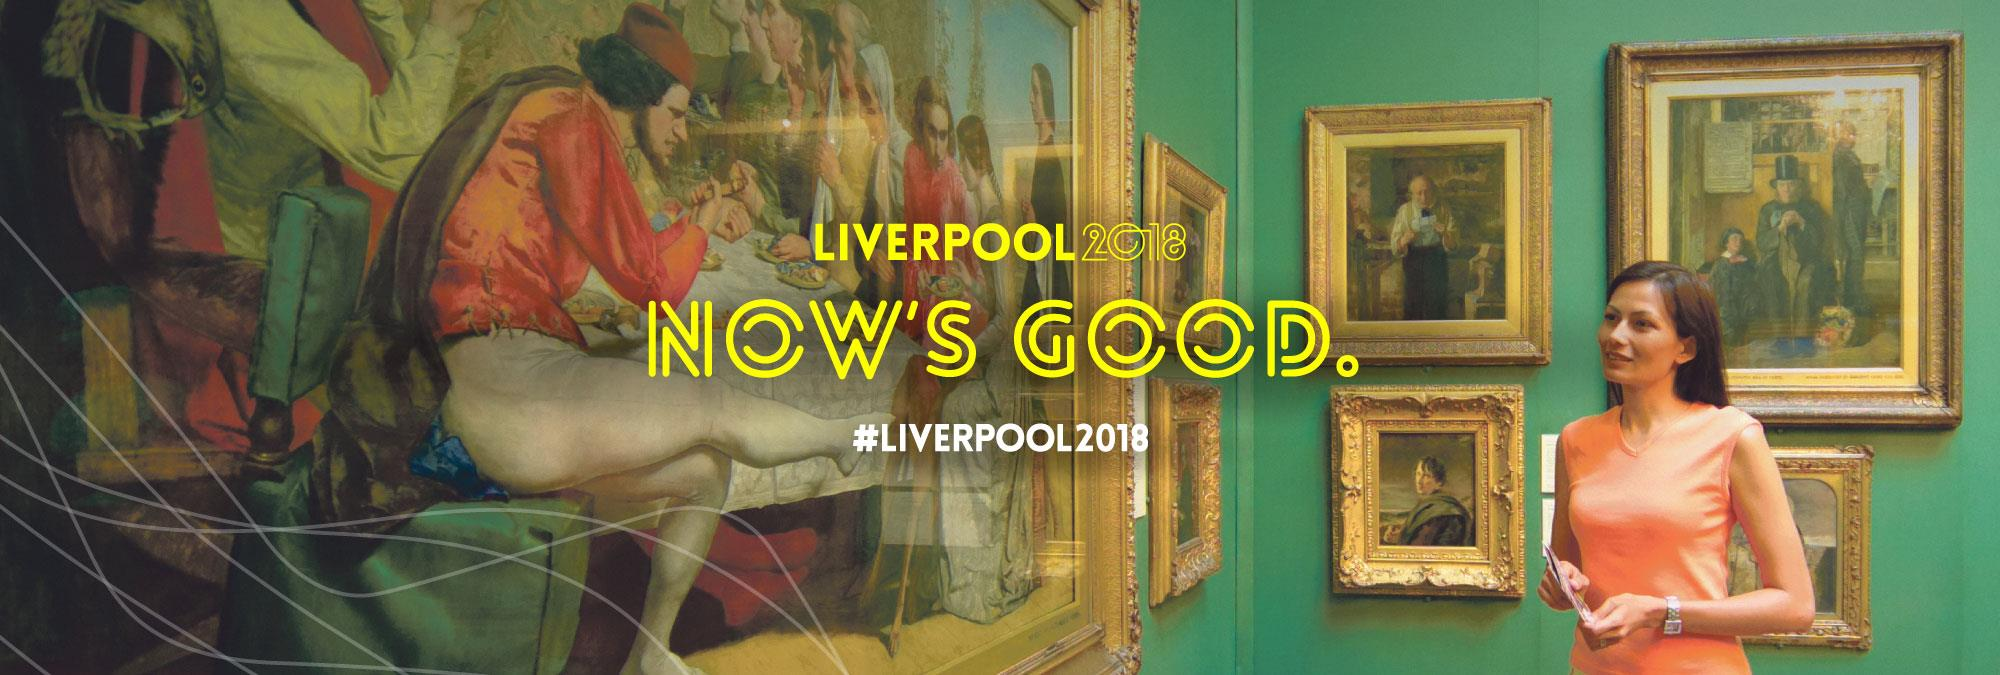 Now's good to visit Liverpool for a city break.